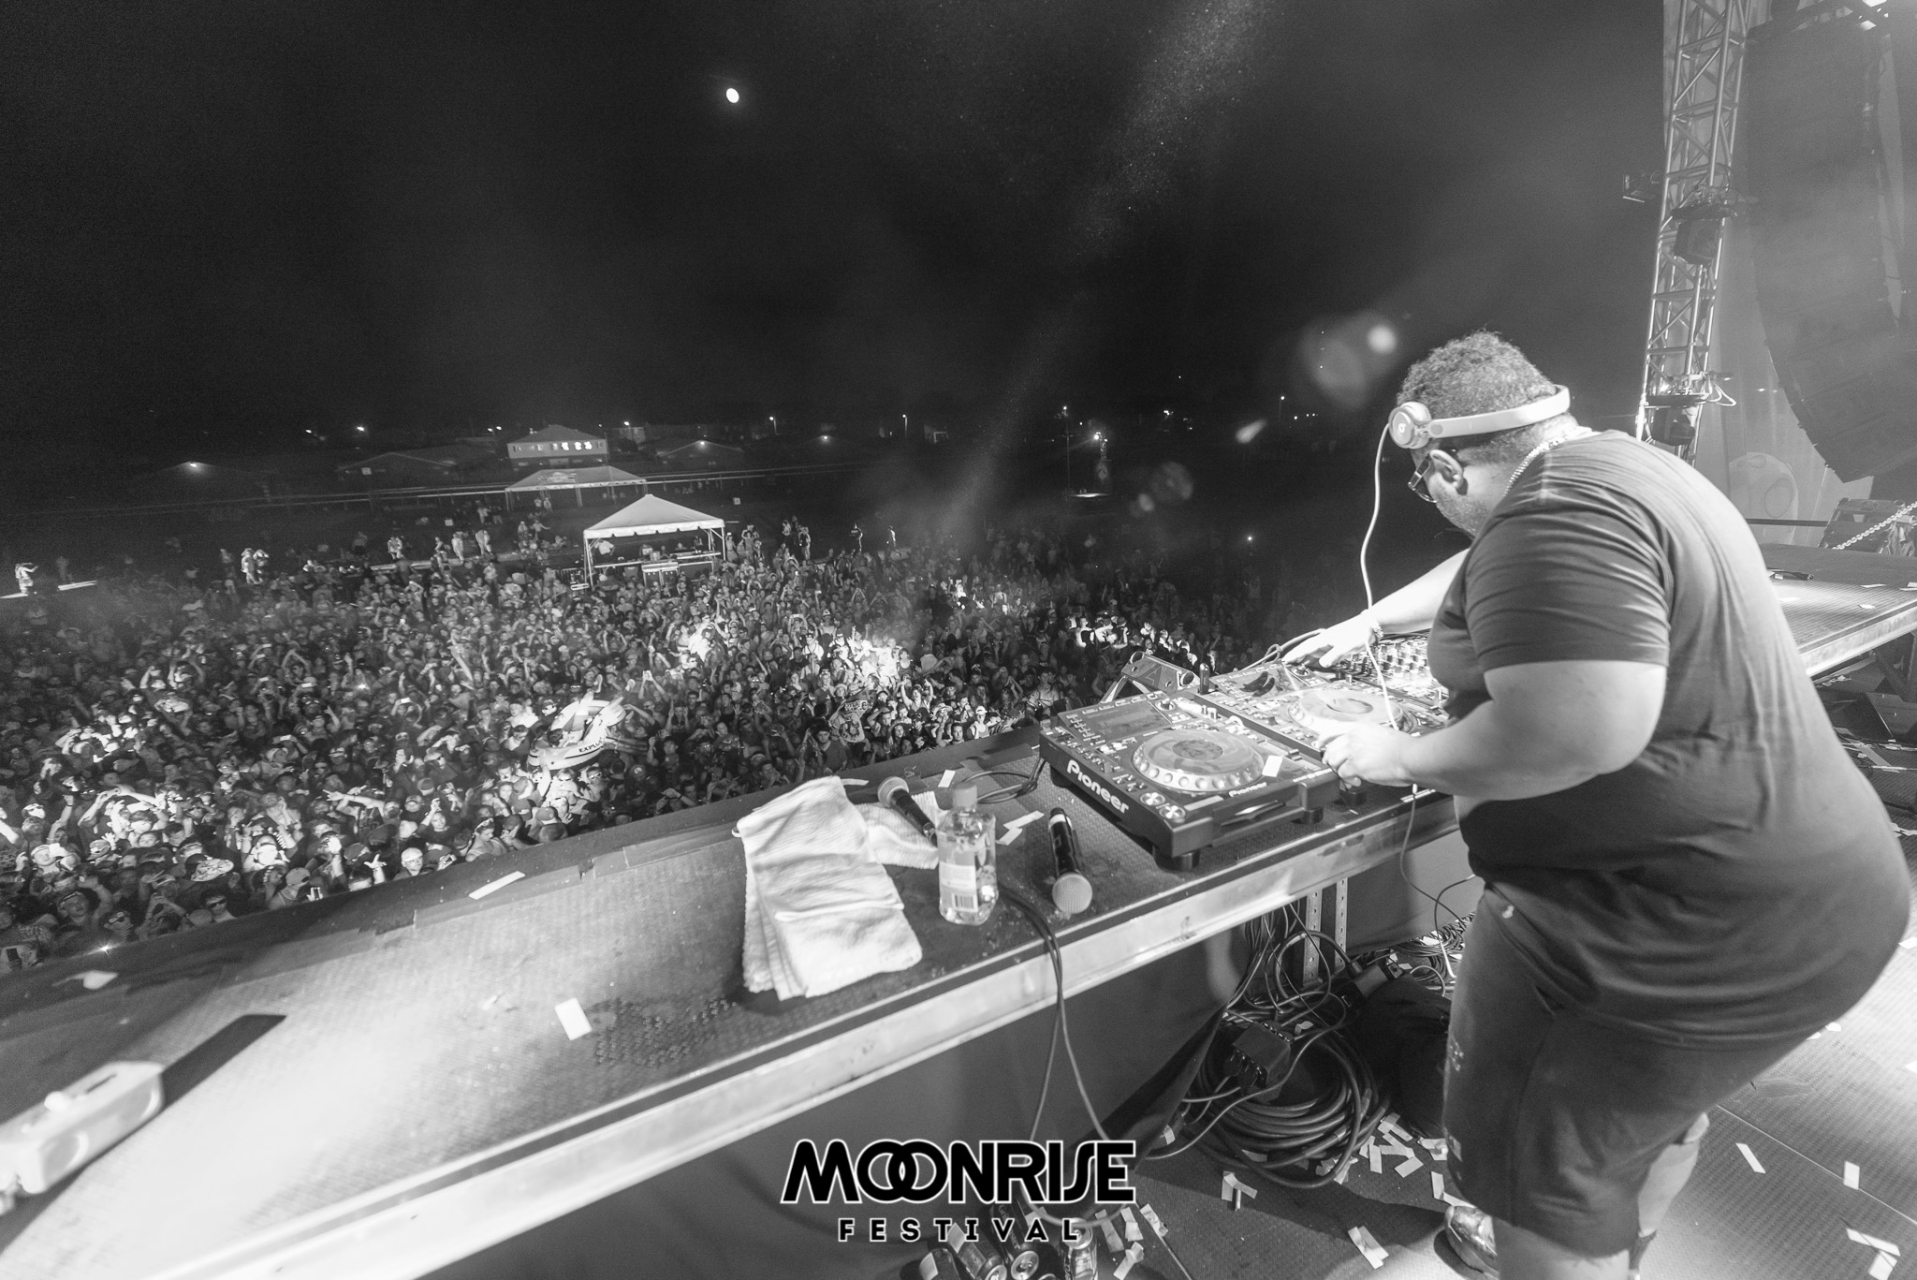 Moonrise_day2-100